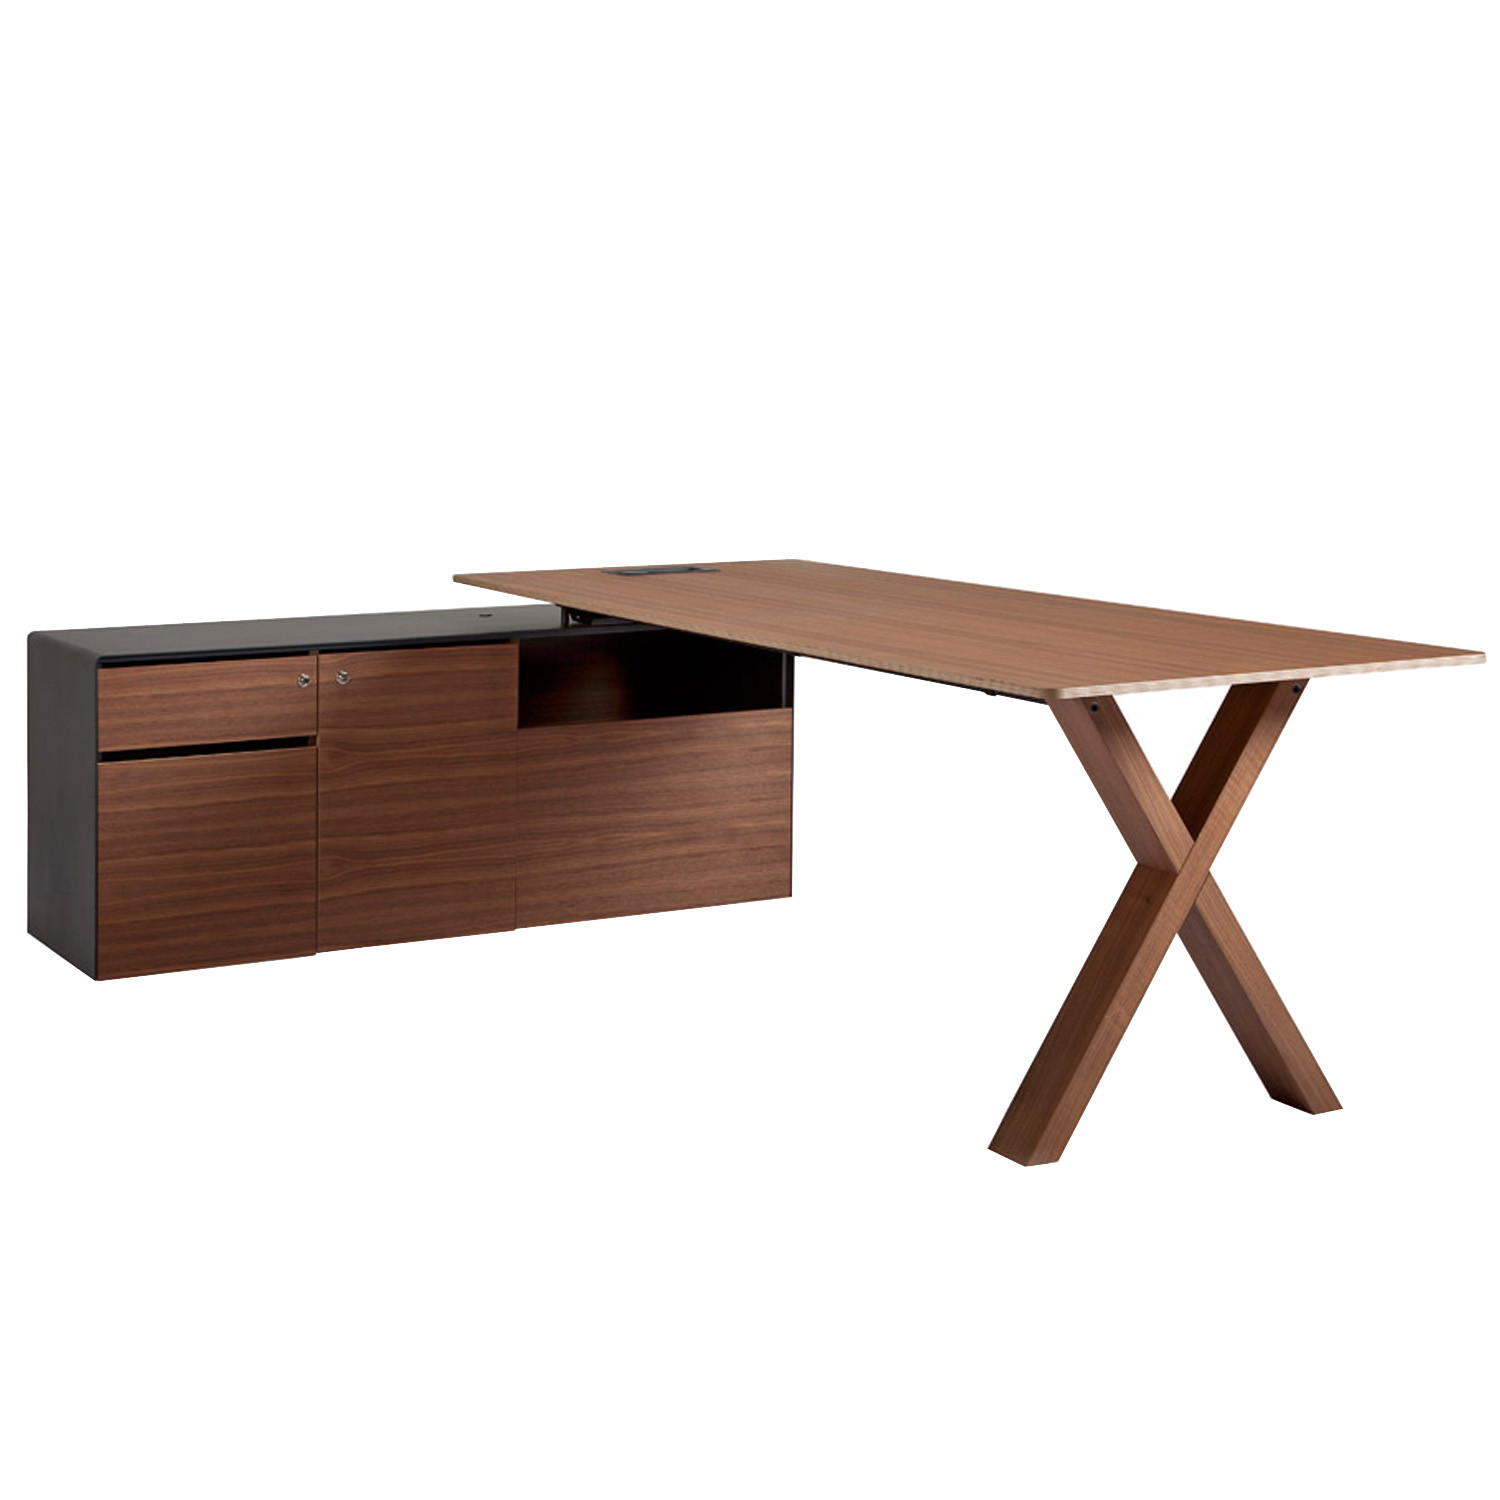 Partita Desk by Faruk Malhan